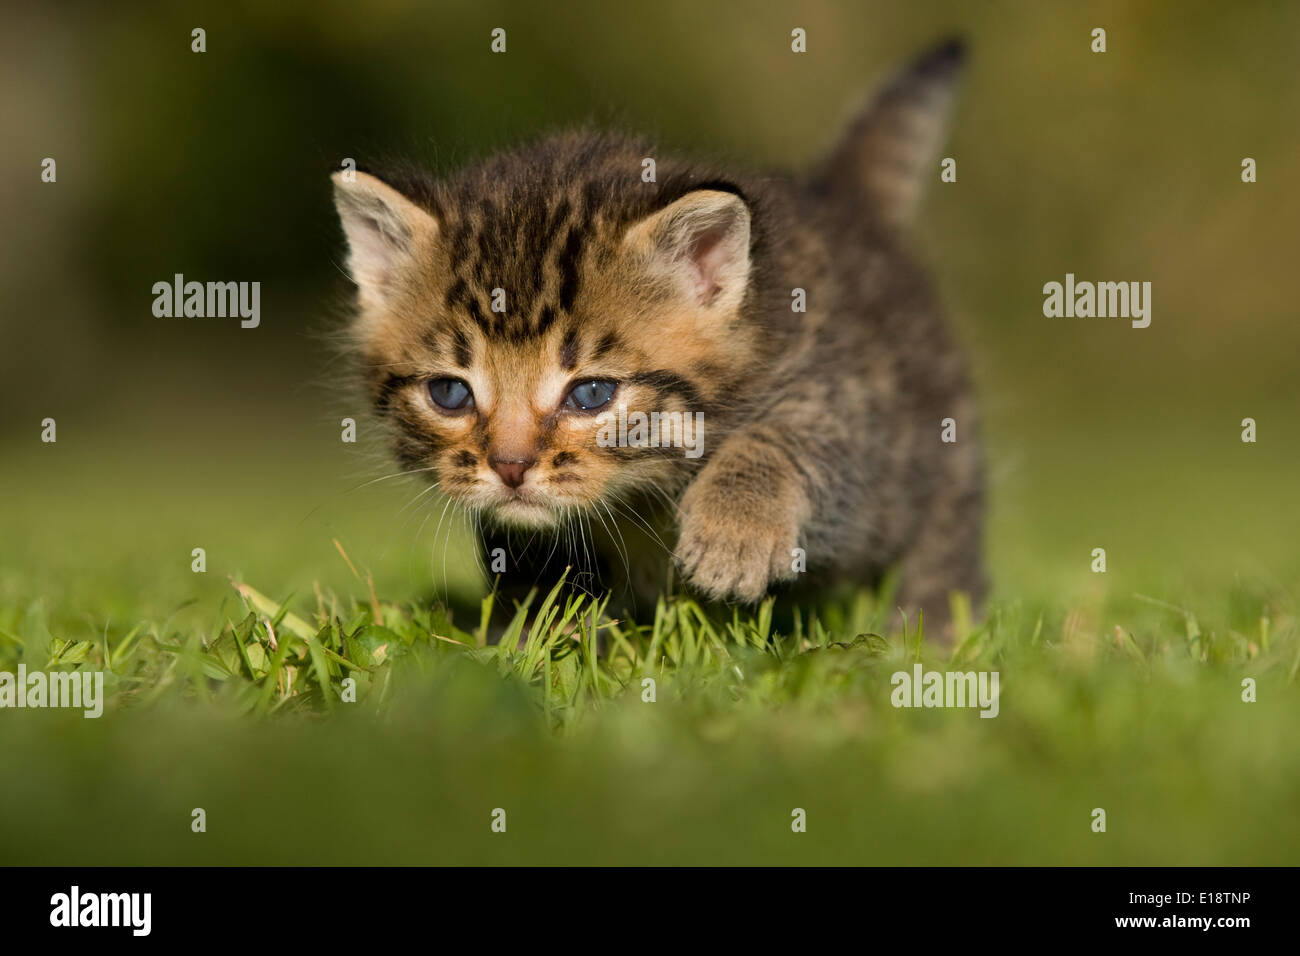 Cat, kitten, 3 weeks old goes over meadow - Stock Image